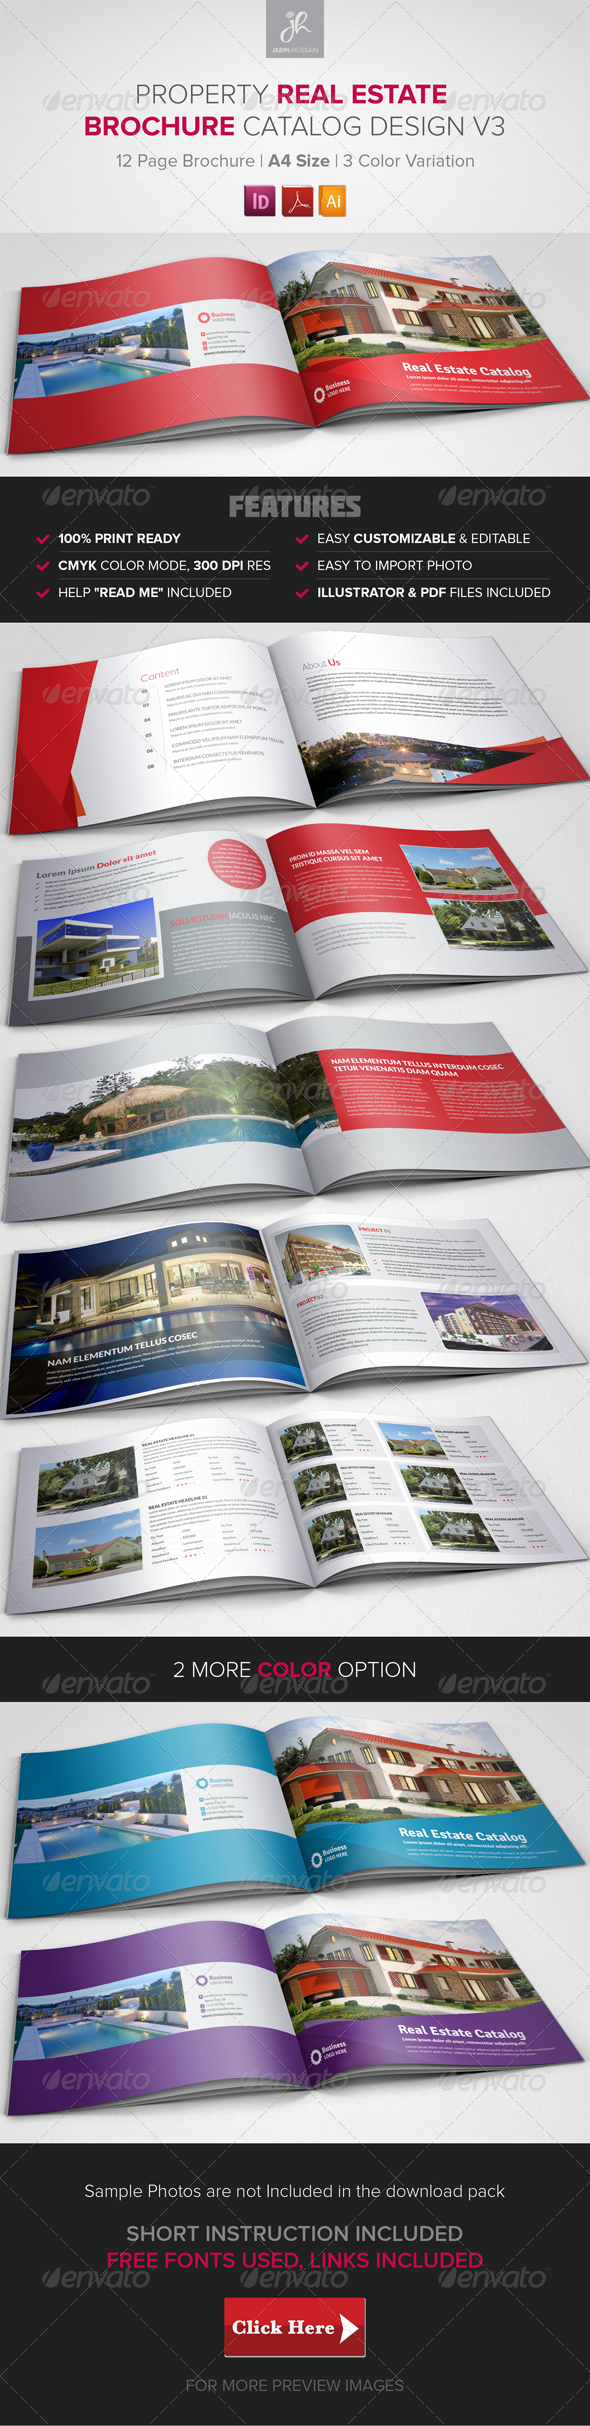 GraphicRiver Property Sale Real Estate Brochure Catalog v3 8187610